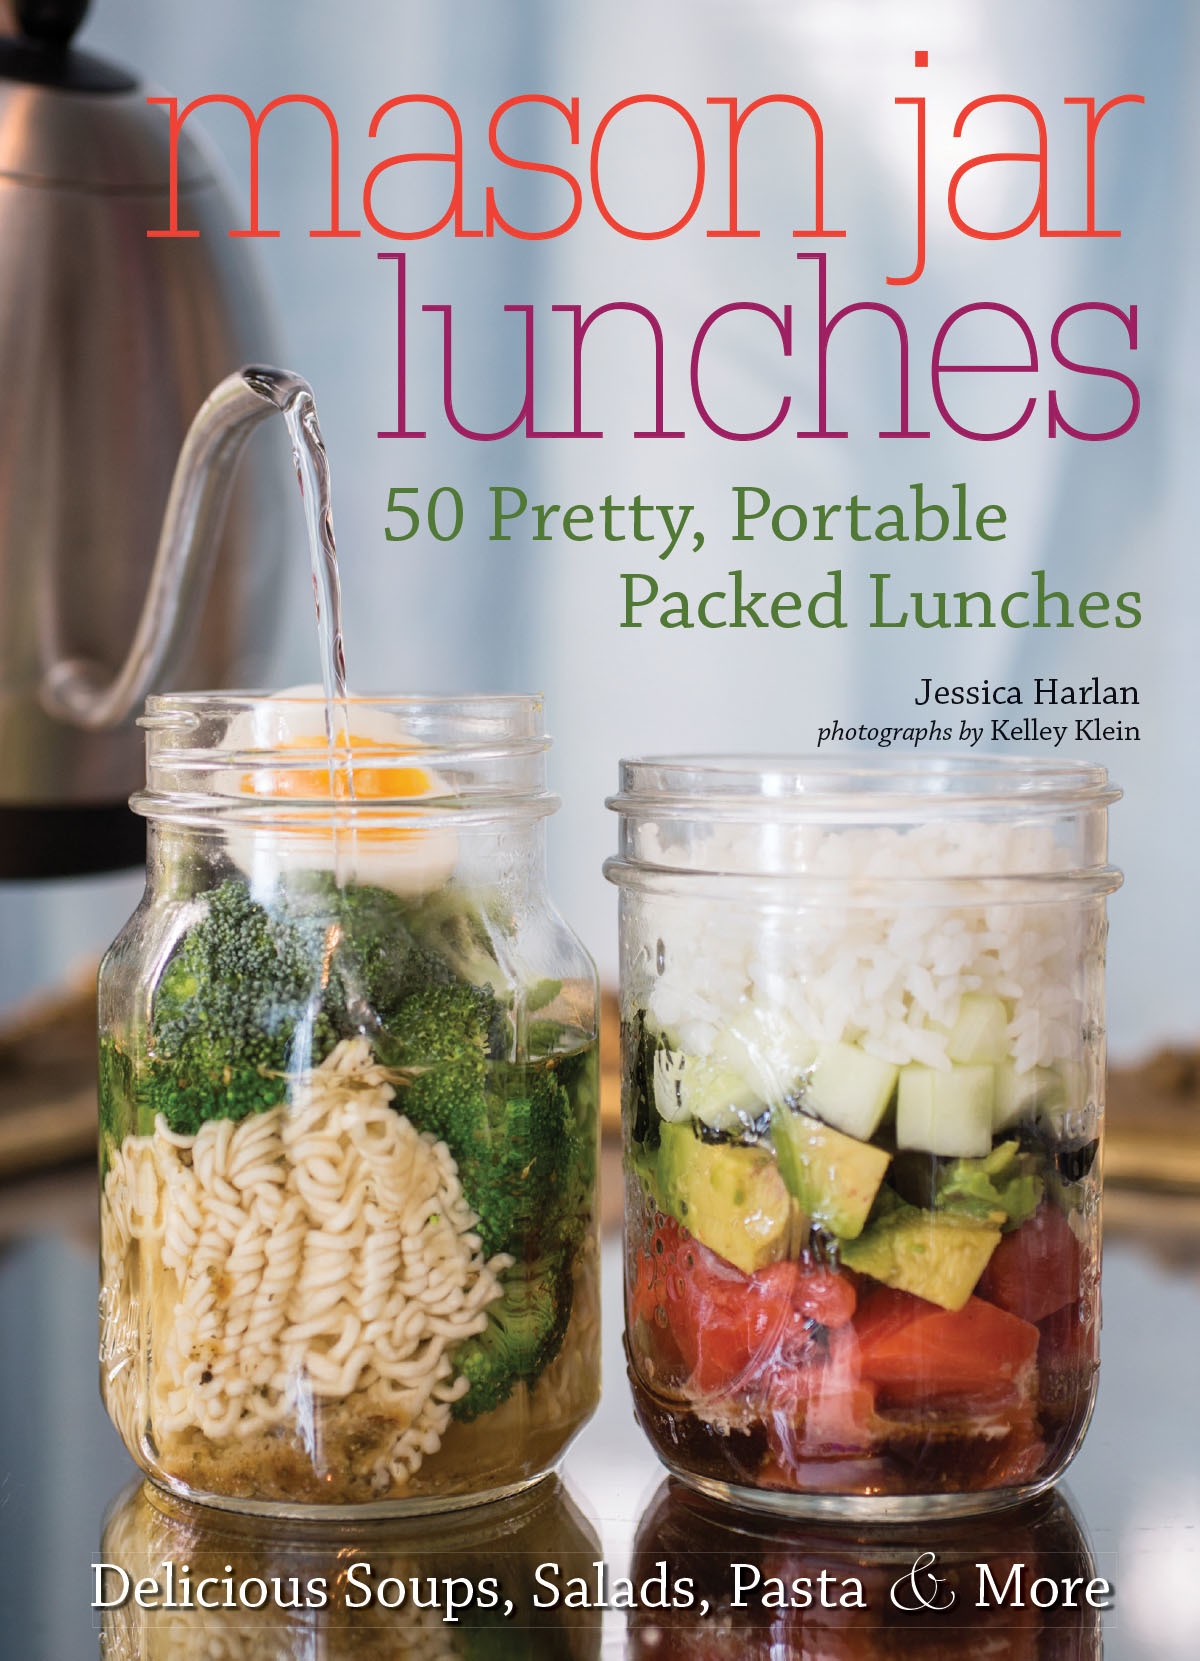 Mason Jar Lunches 50 Pretty, Portable Packed Lunches (Including) Delicious Soups, Salads, Pastas and More